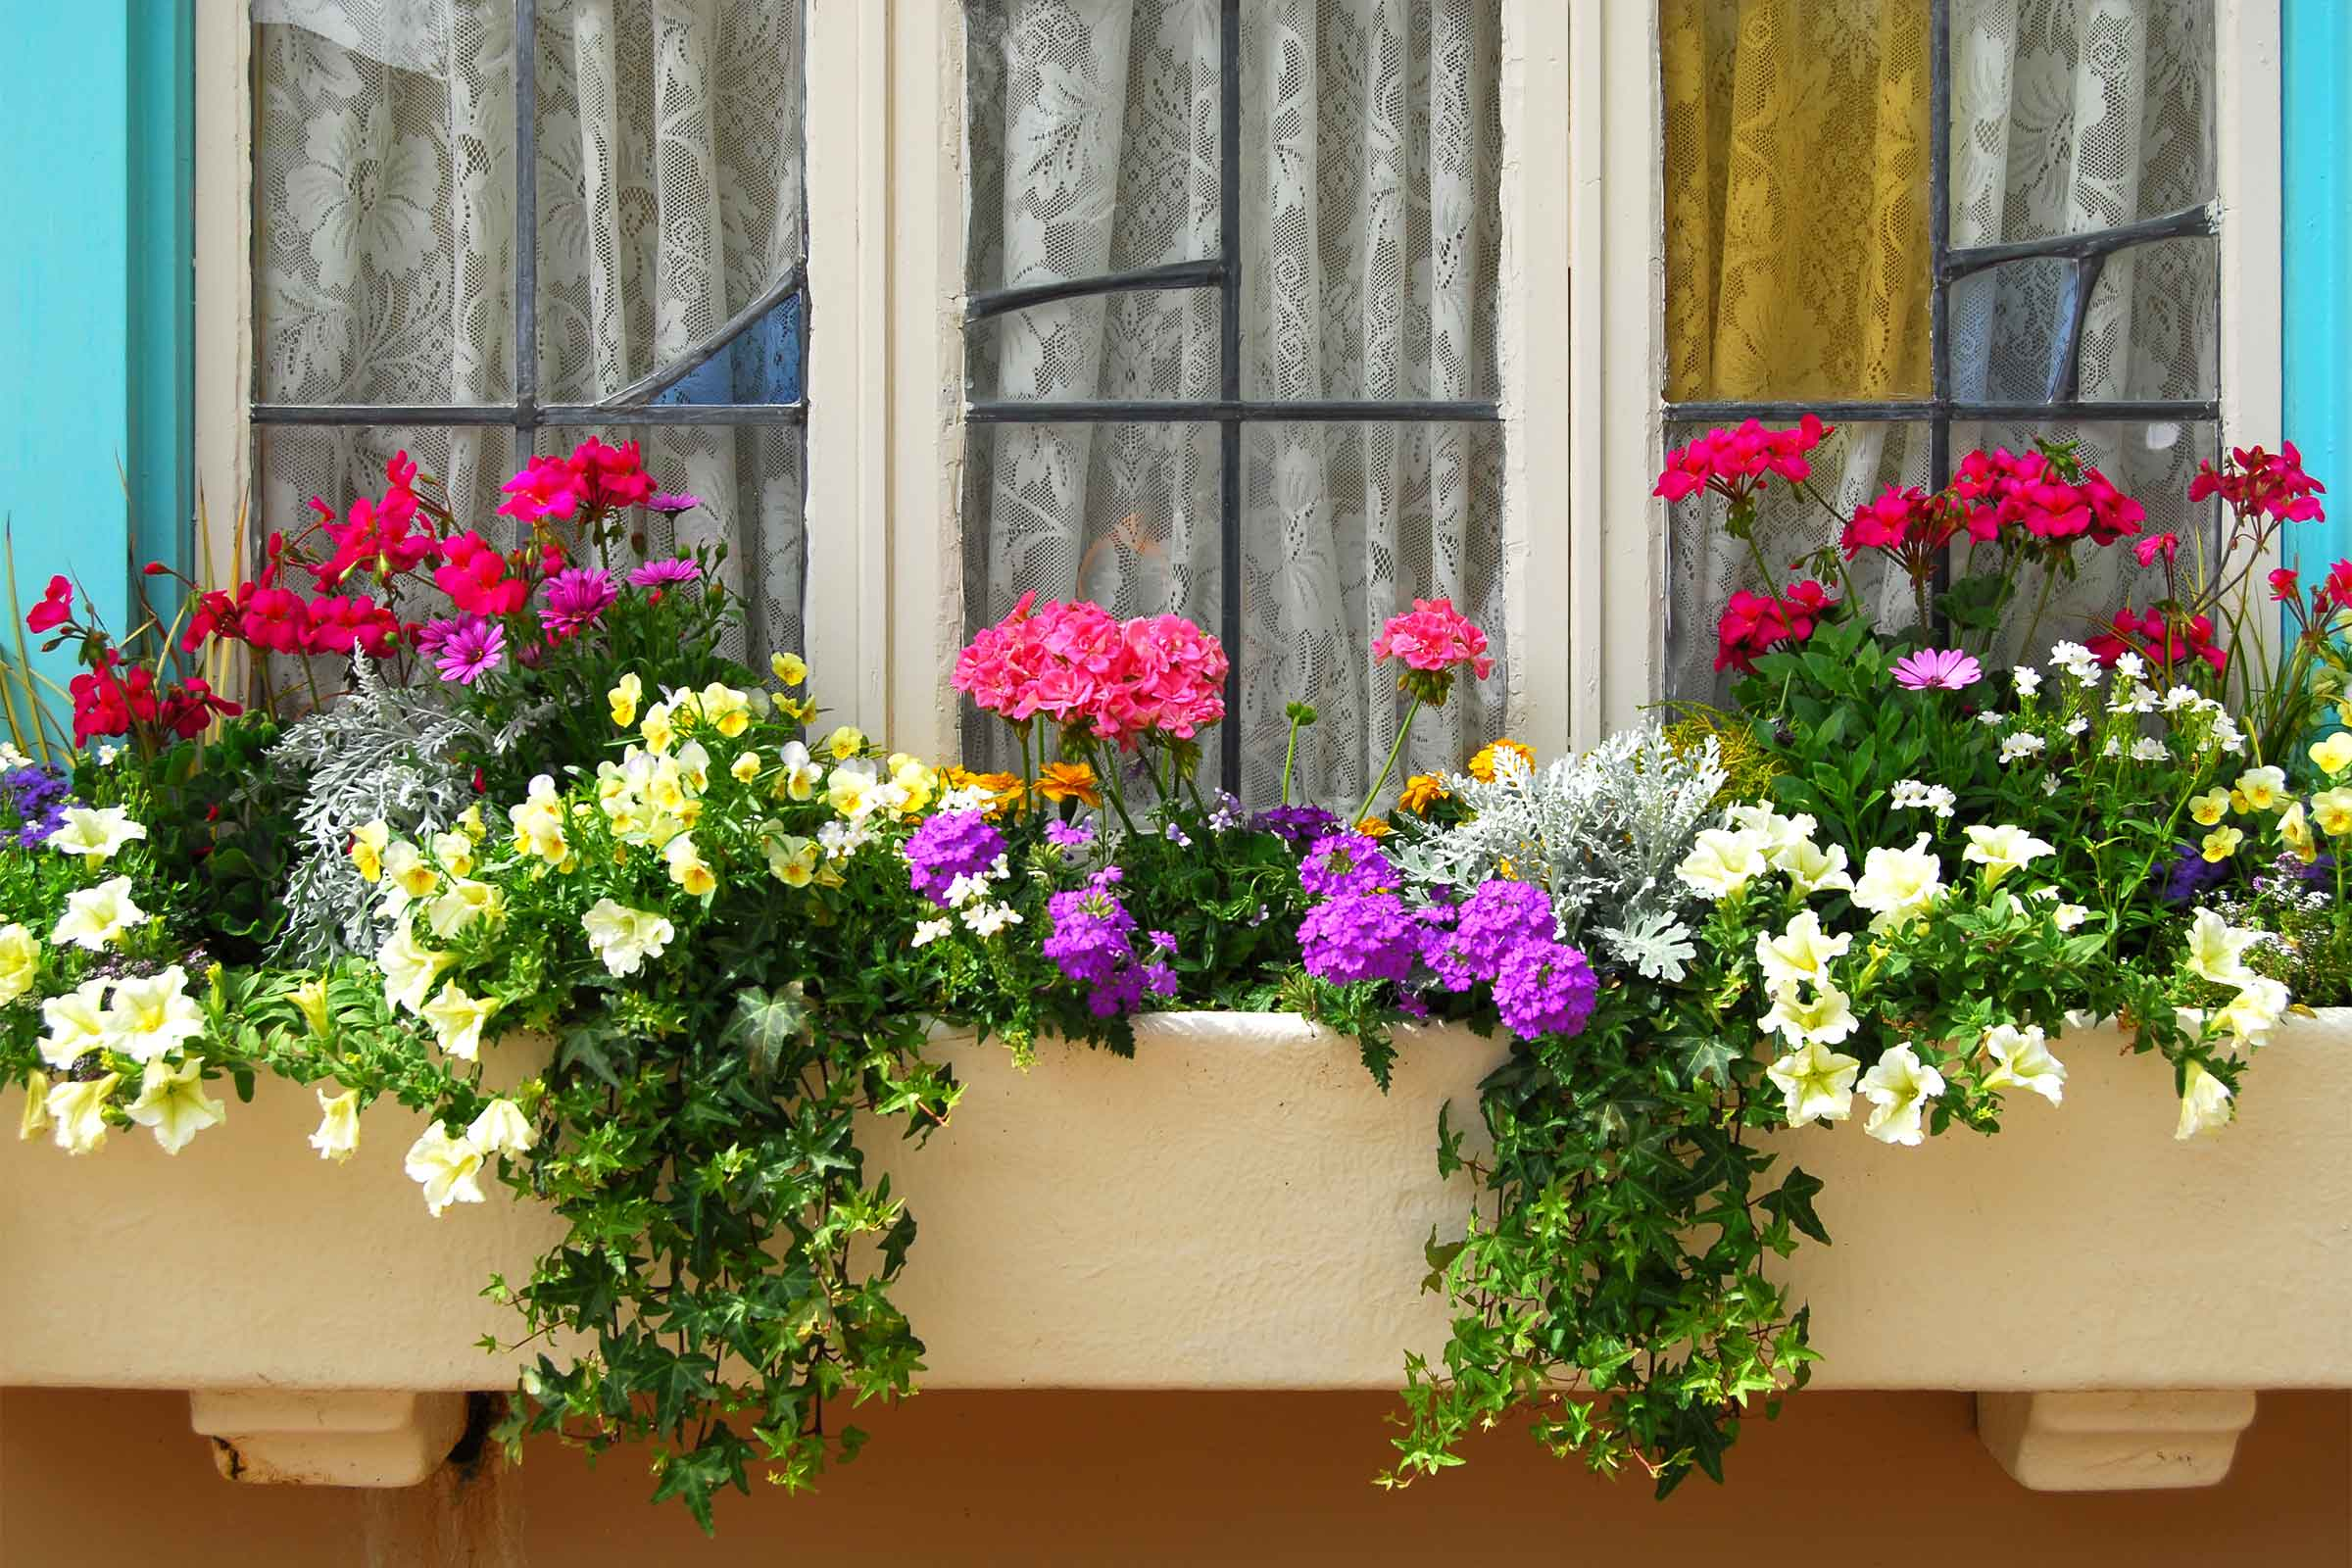 Filling Those Window Boxes Flower Species That Thrive